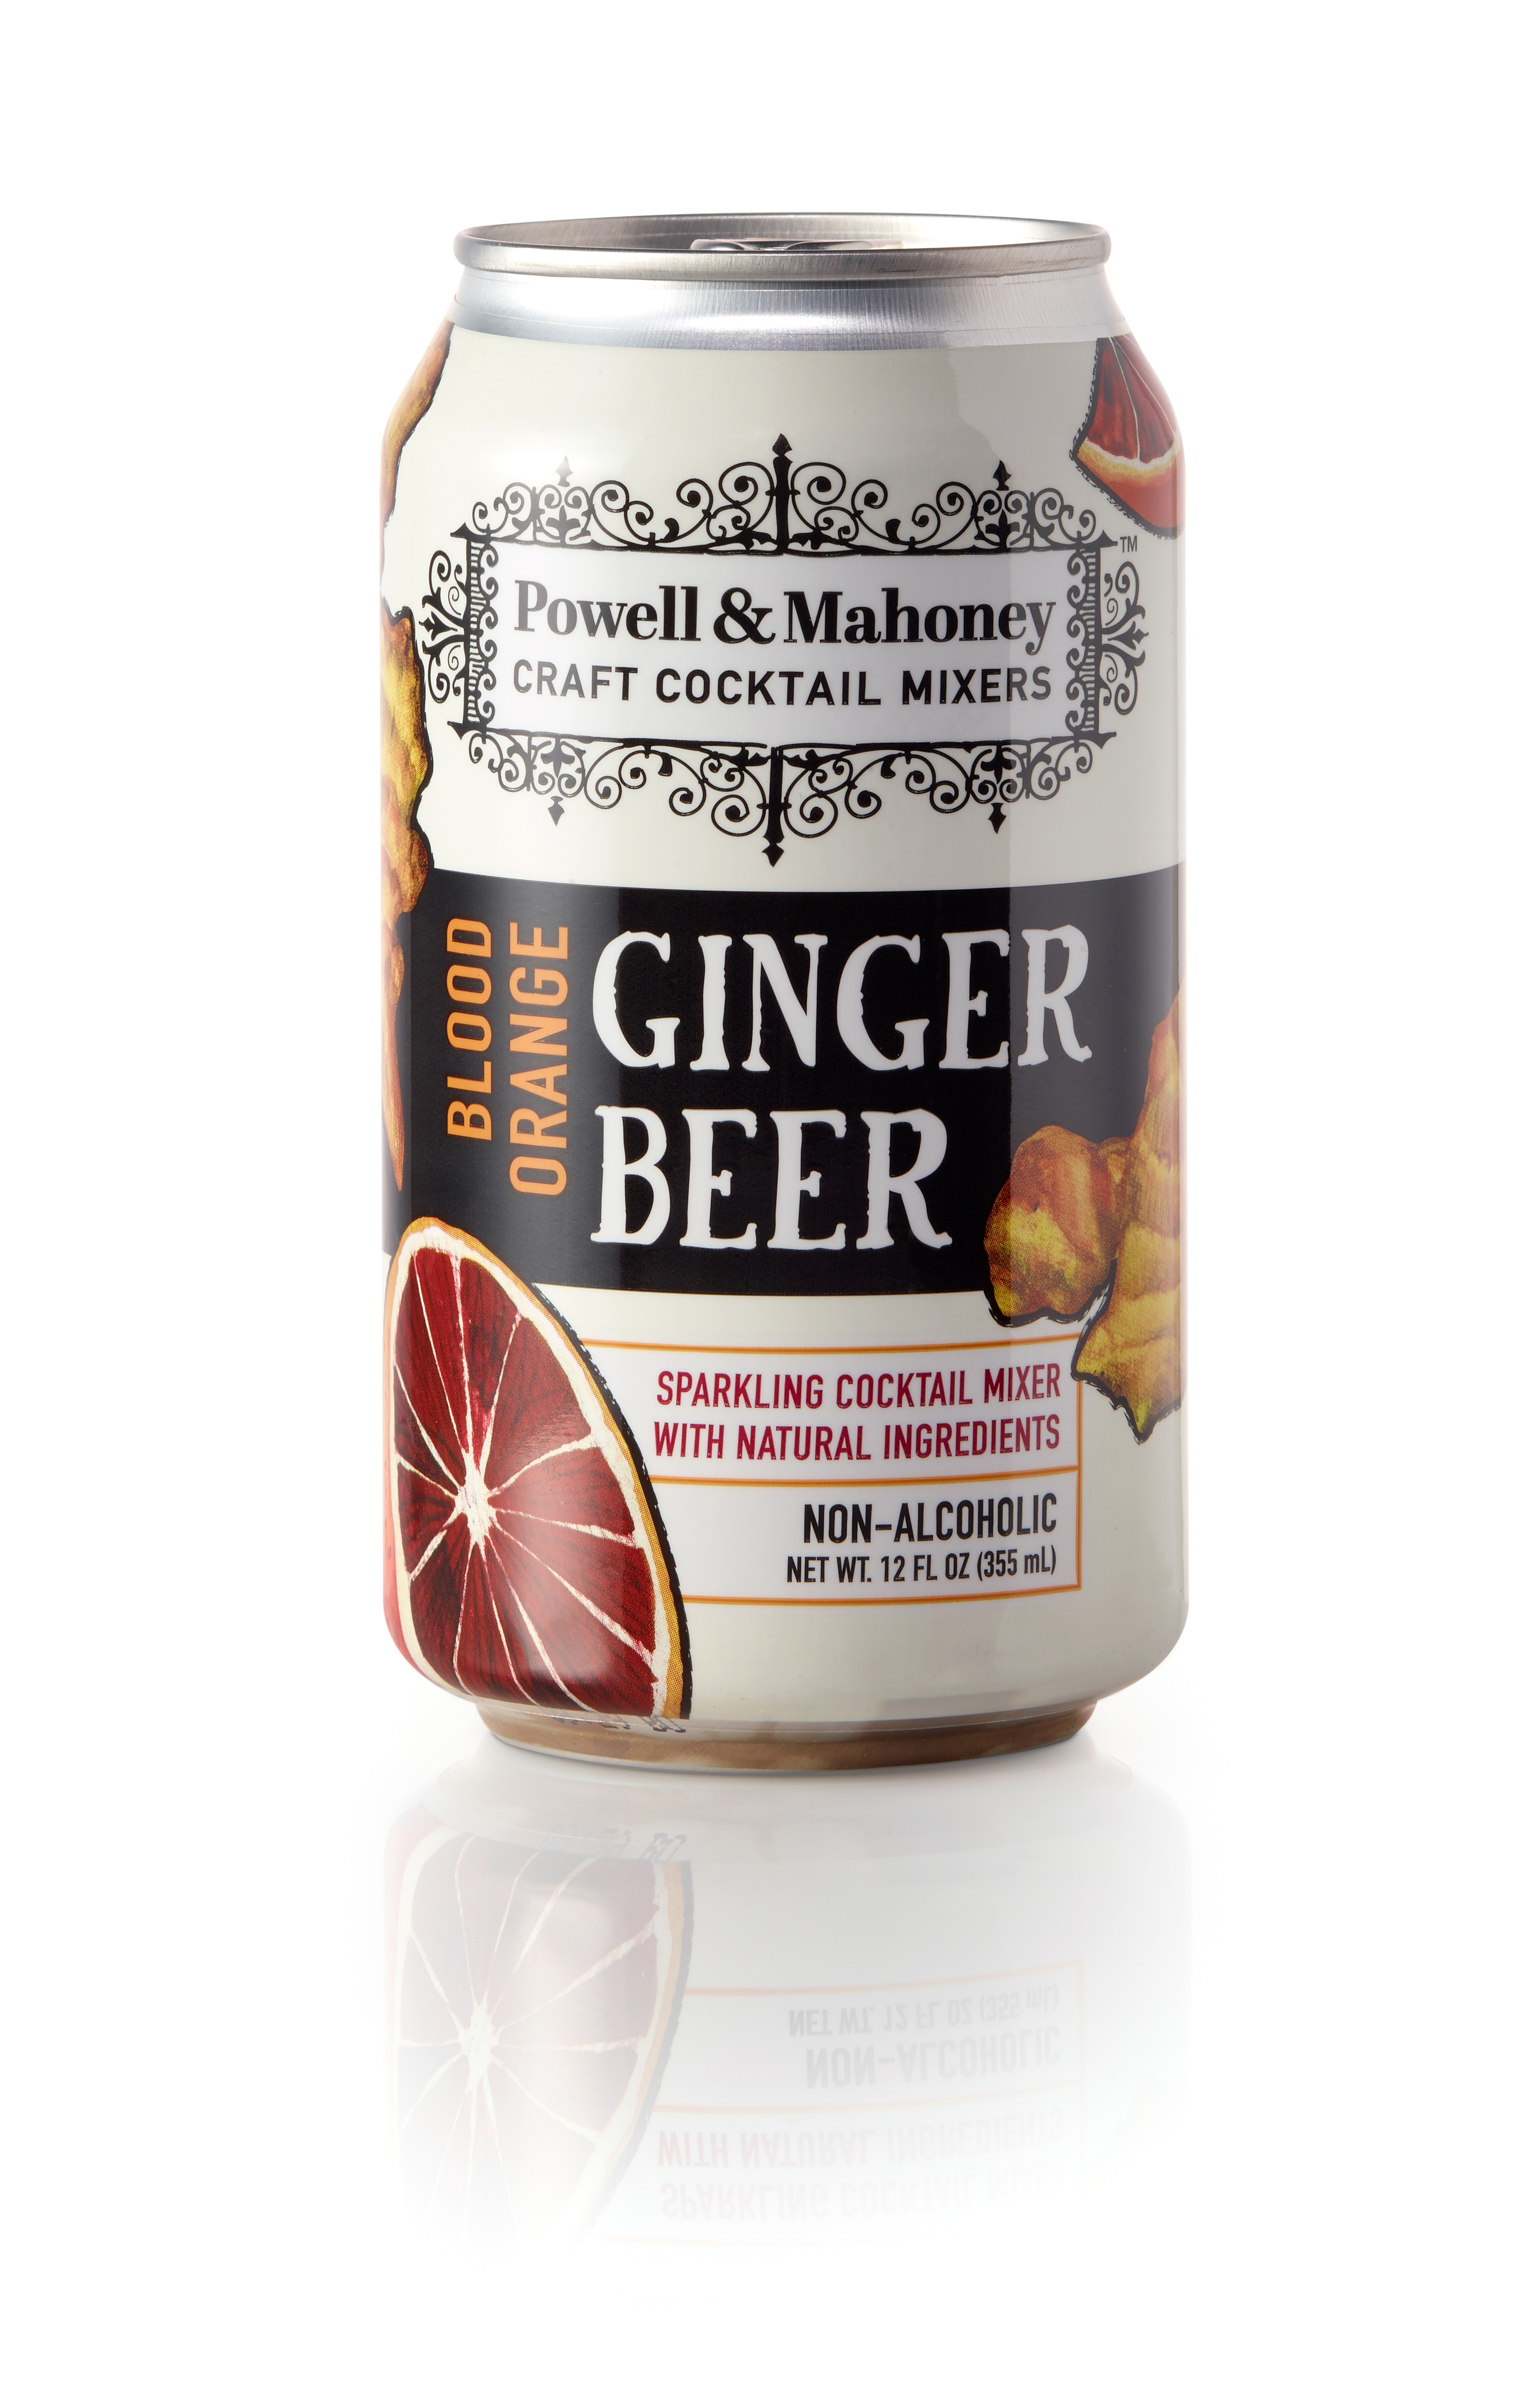 Powell & Mahoney Blood Orange Ginger Beer (12oz Can) - 4 pack case